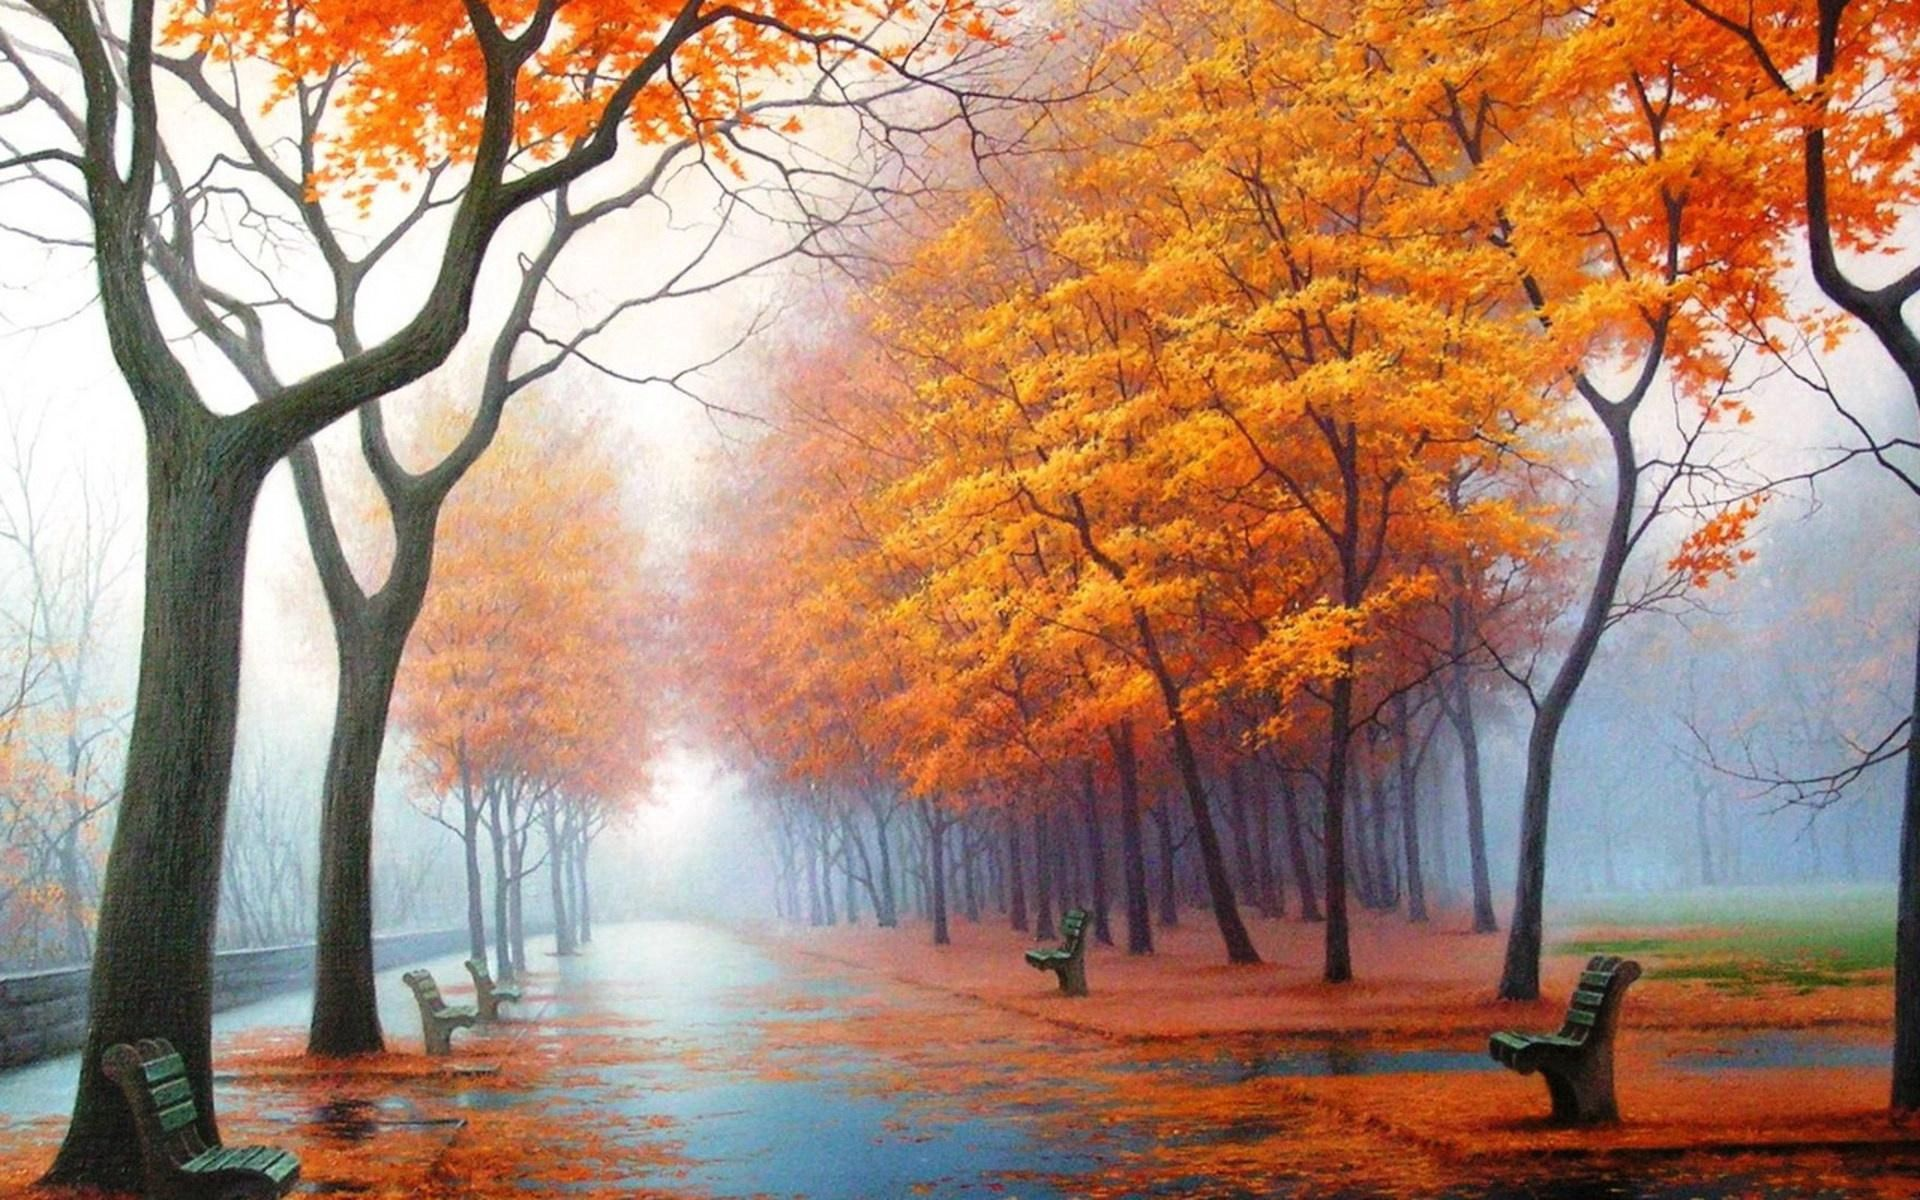 88103 download wallpaper Nature, Autumn, Park, Alley, Benches, Trees, Leaf Fall, Fall, Fog, Steam, Haze, Track, Asphalt, Painting, Art screensavers and pictures for free